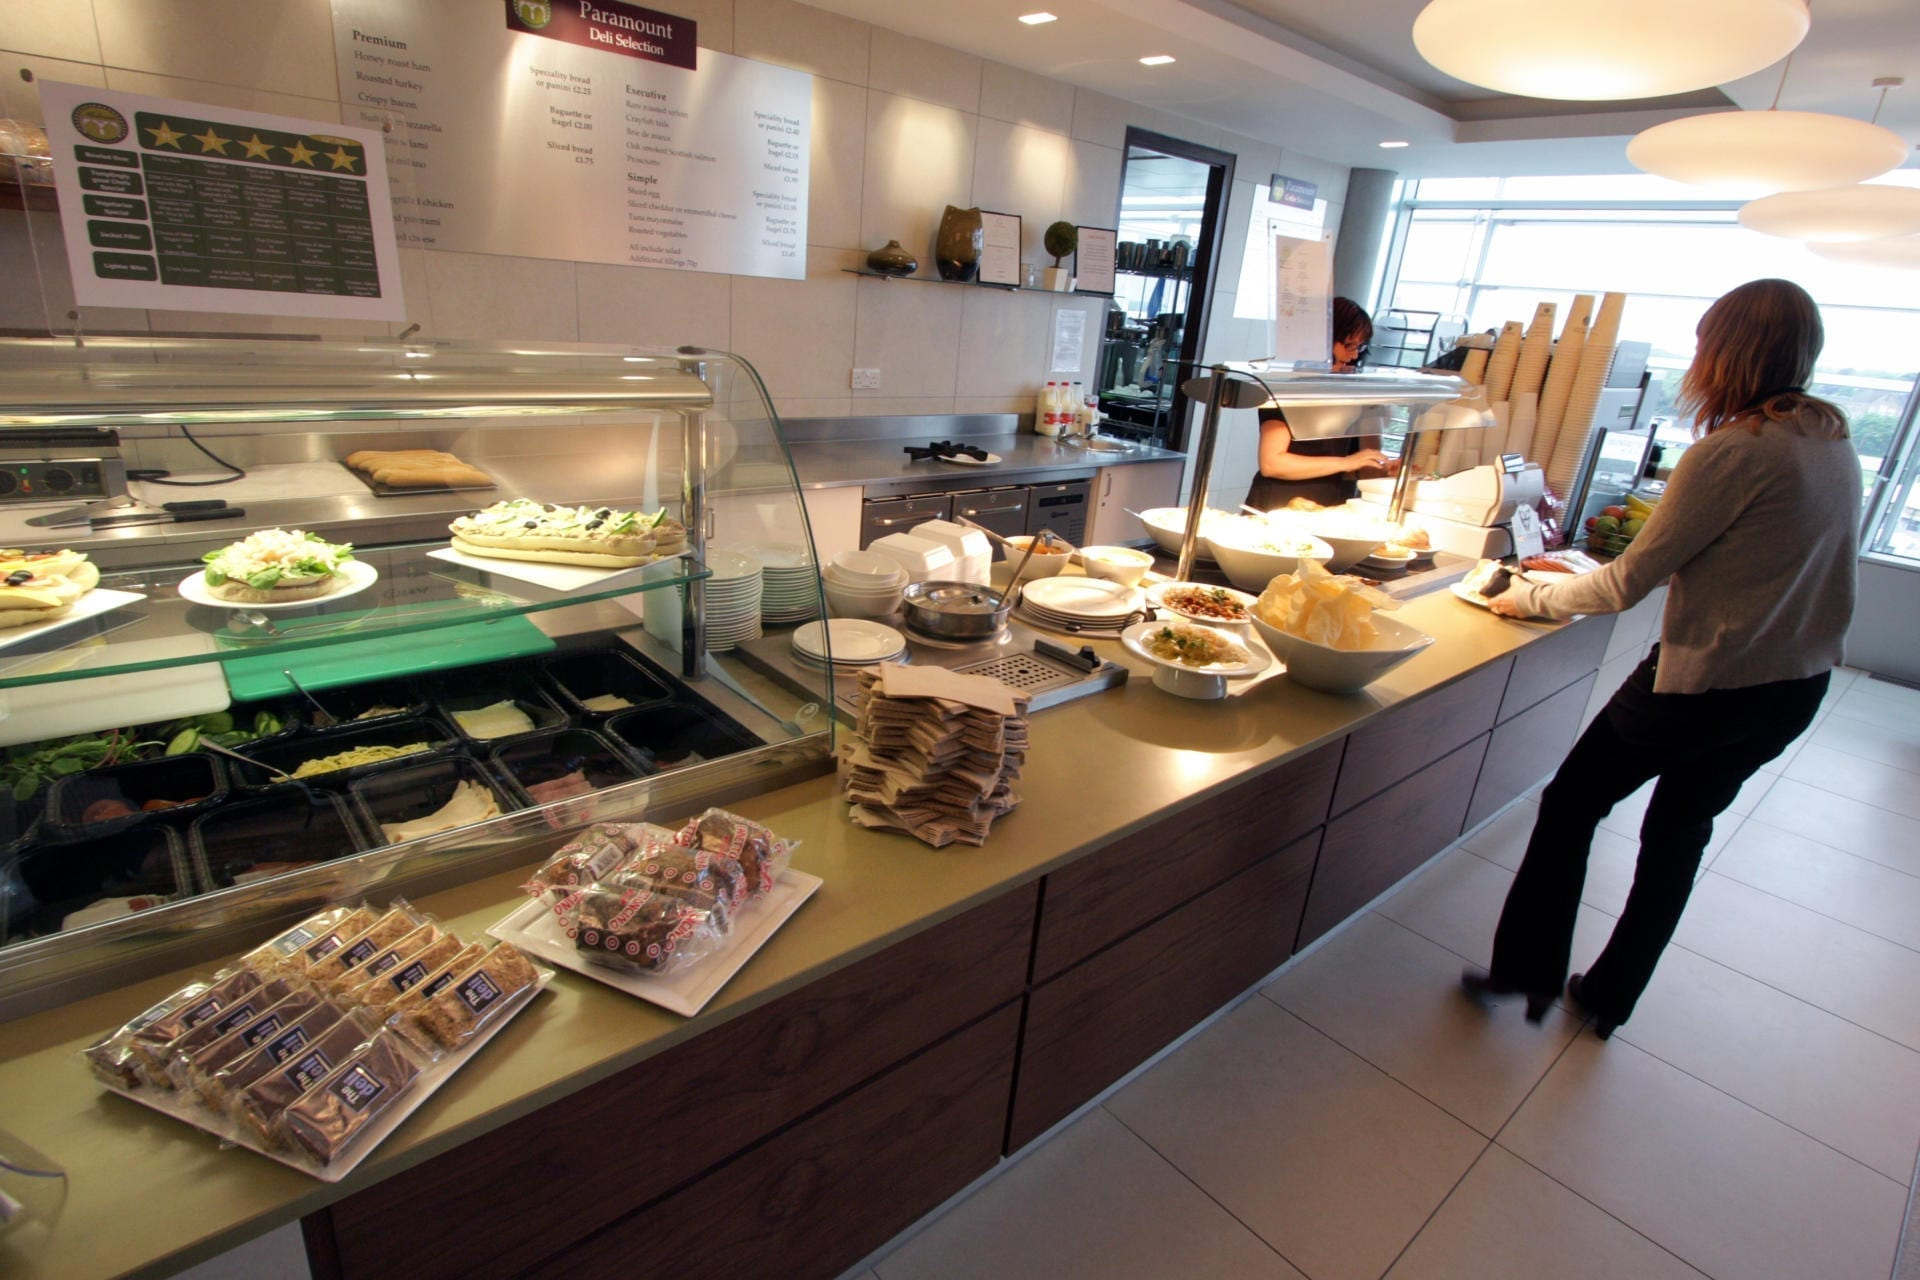 Paramount-Pictures-Charlton-House-Catering-Chiswick-Servery-Front-of-house-Servery-Food-Display-spacecatering_7